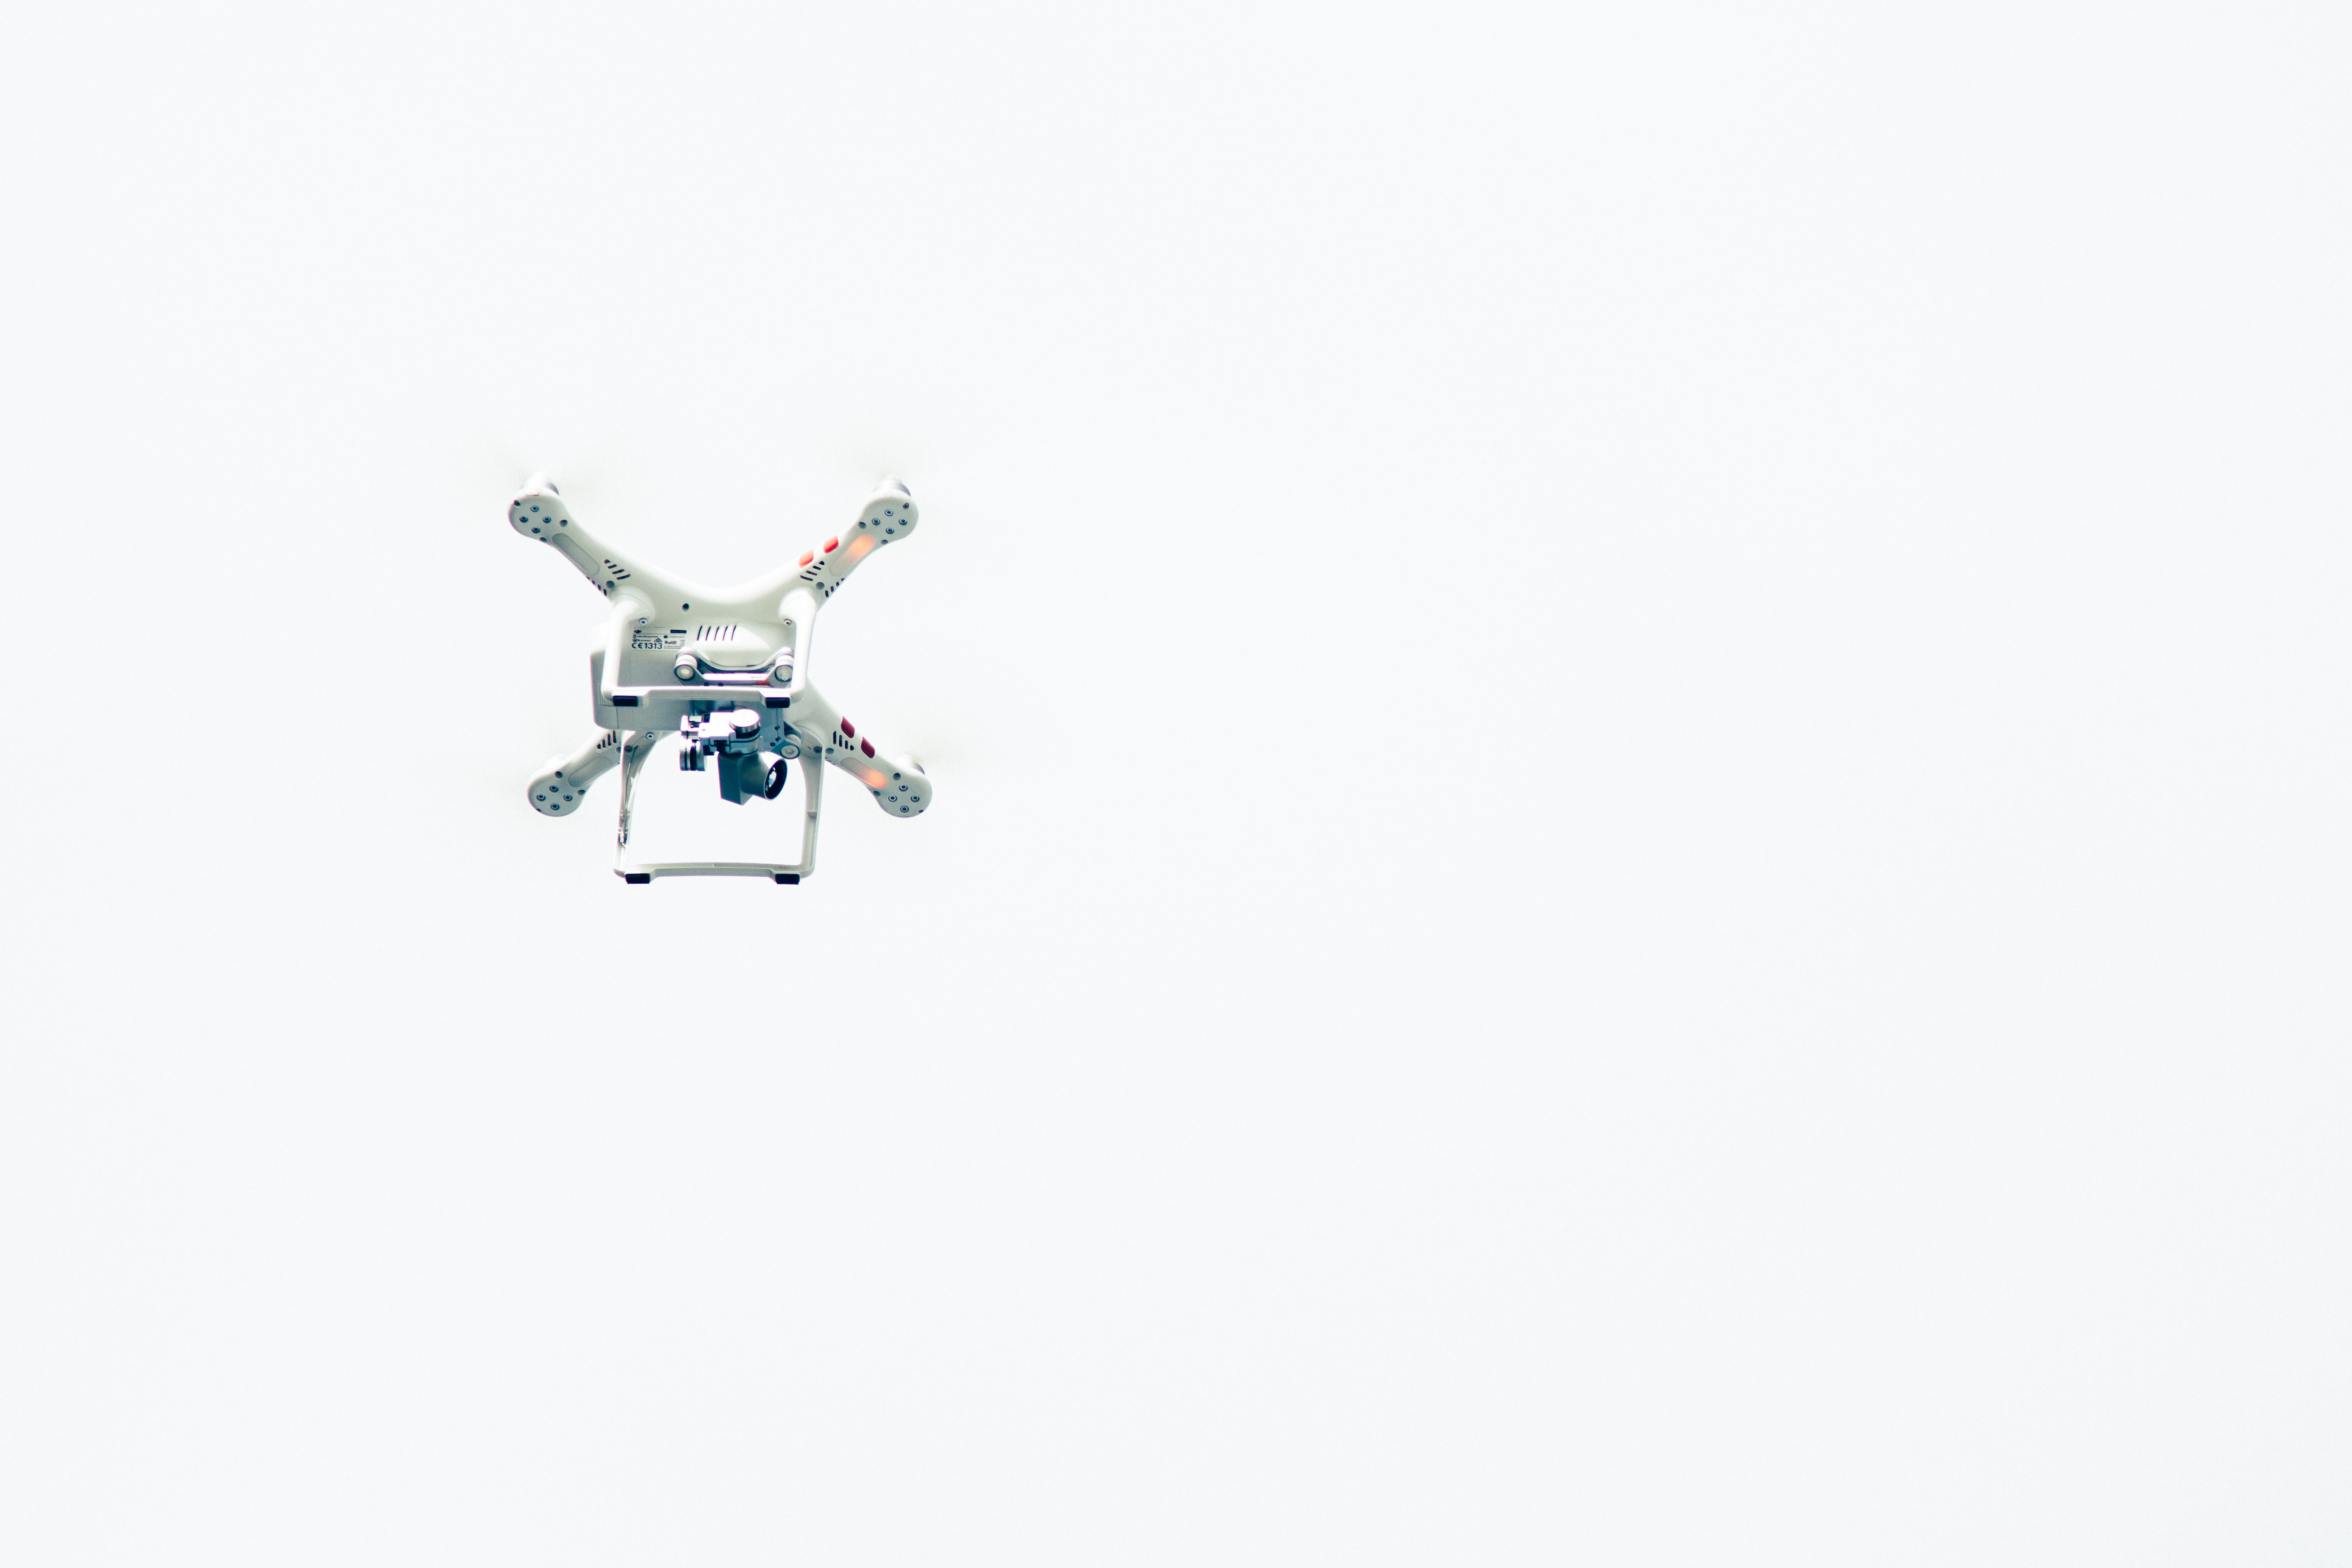 White Quadcopter, Aircraft, Camera, Drone, Fly, HQ Photo